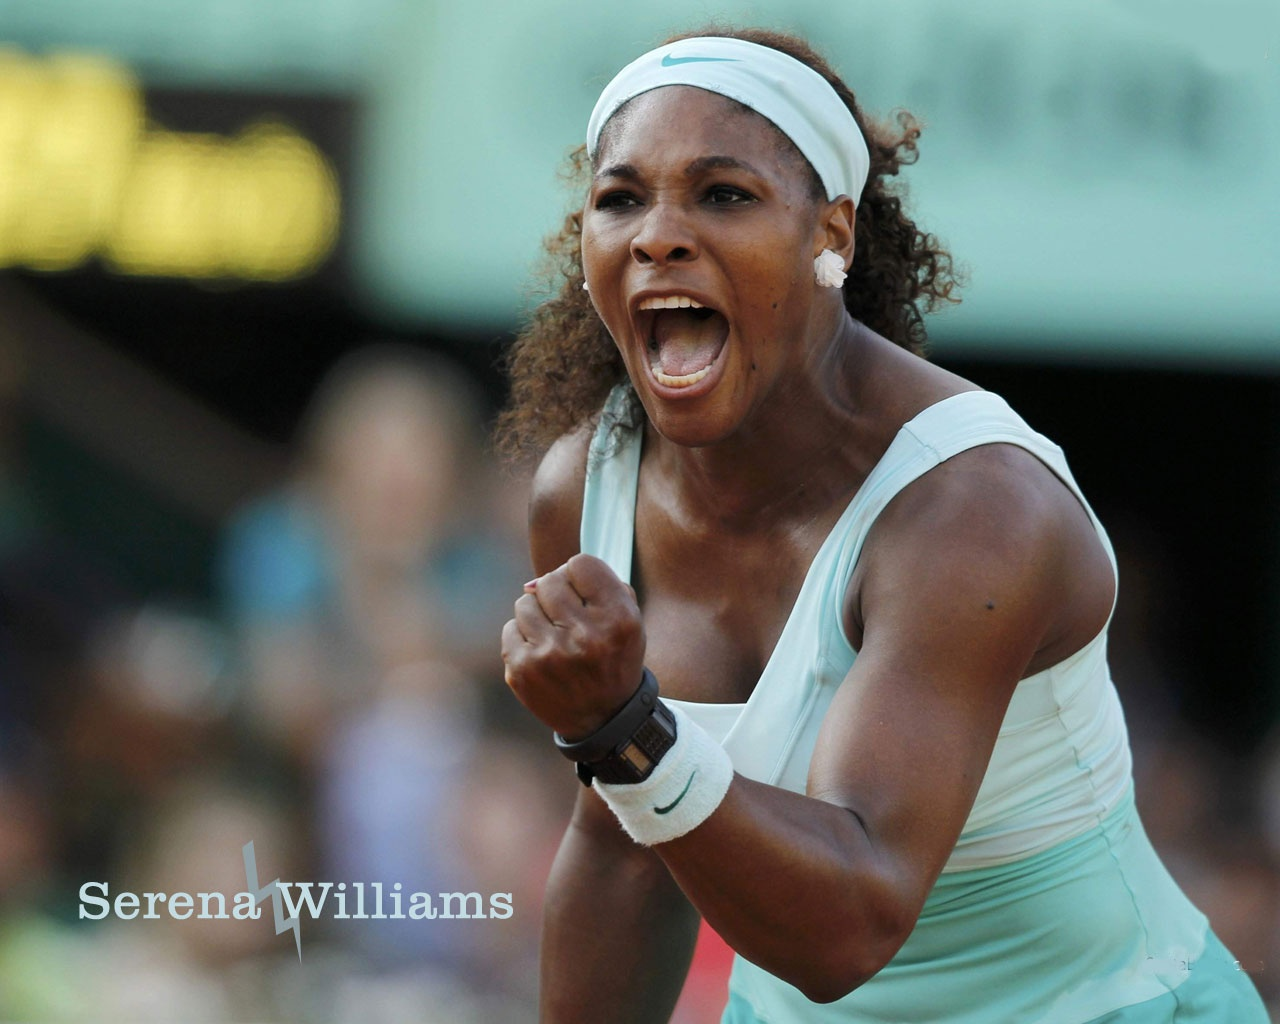 Serena+Williams+04